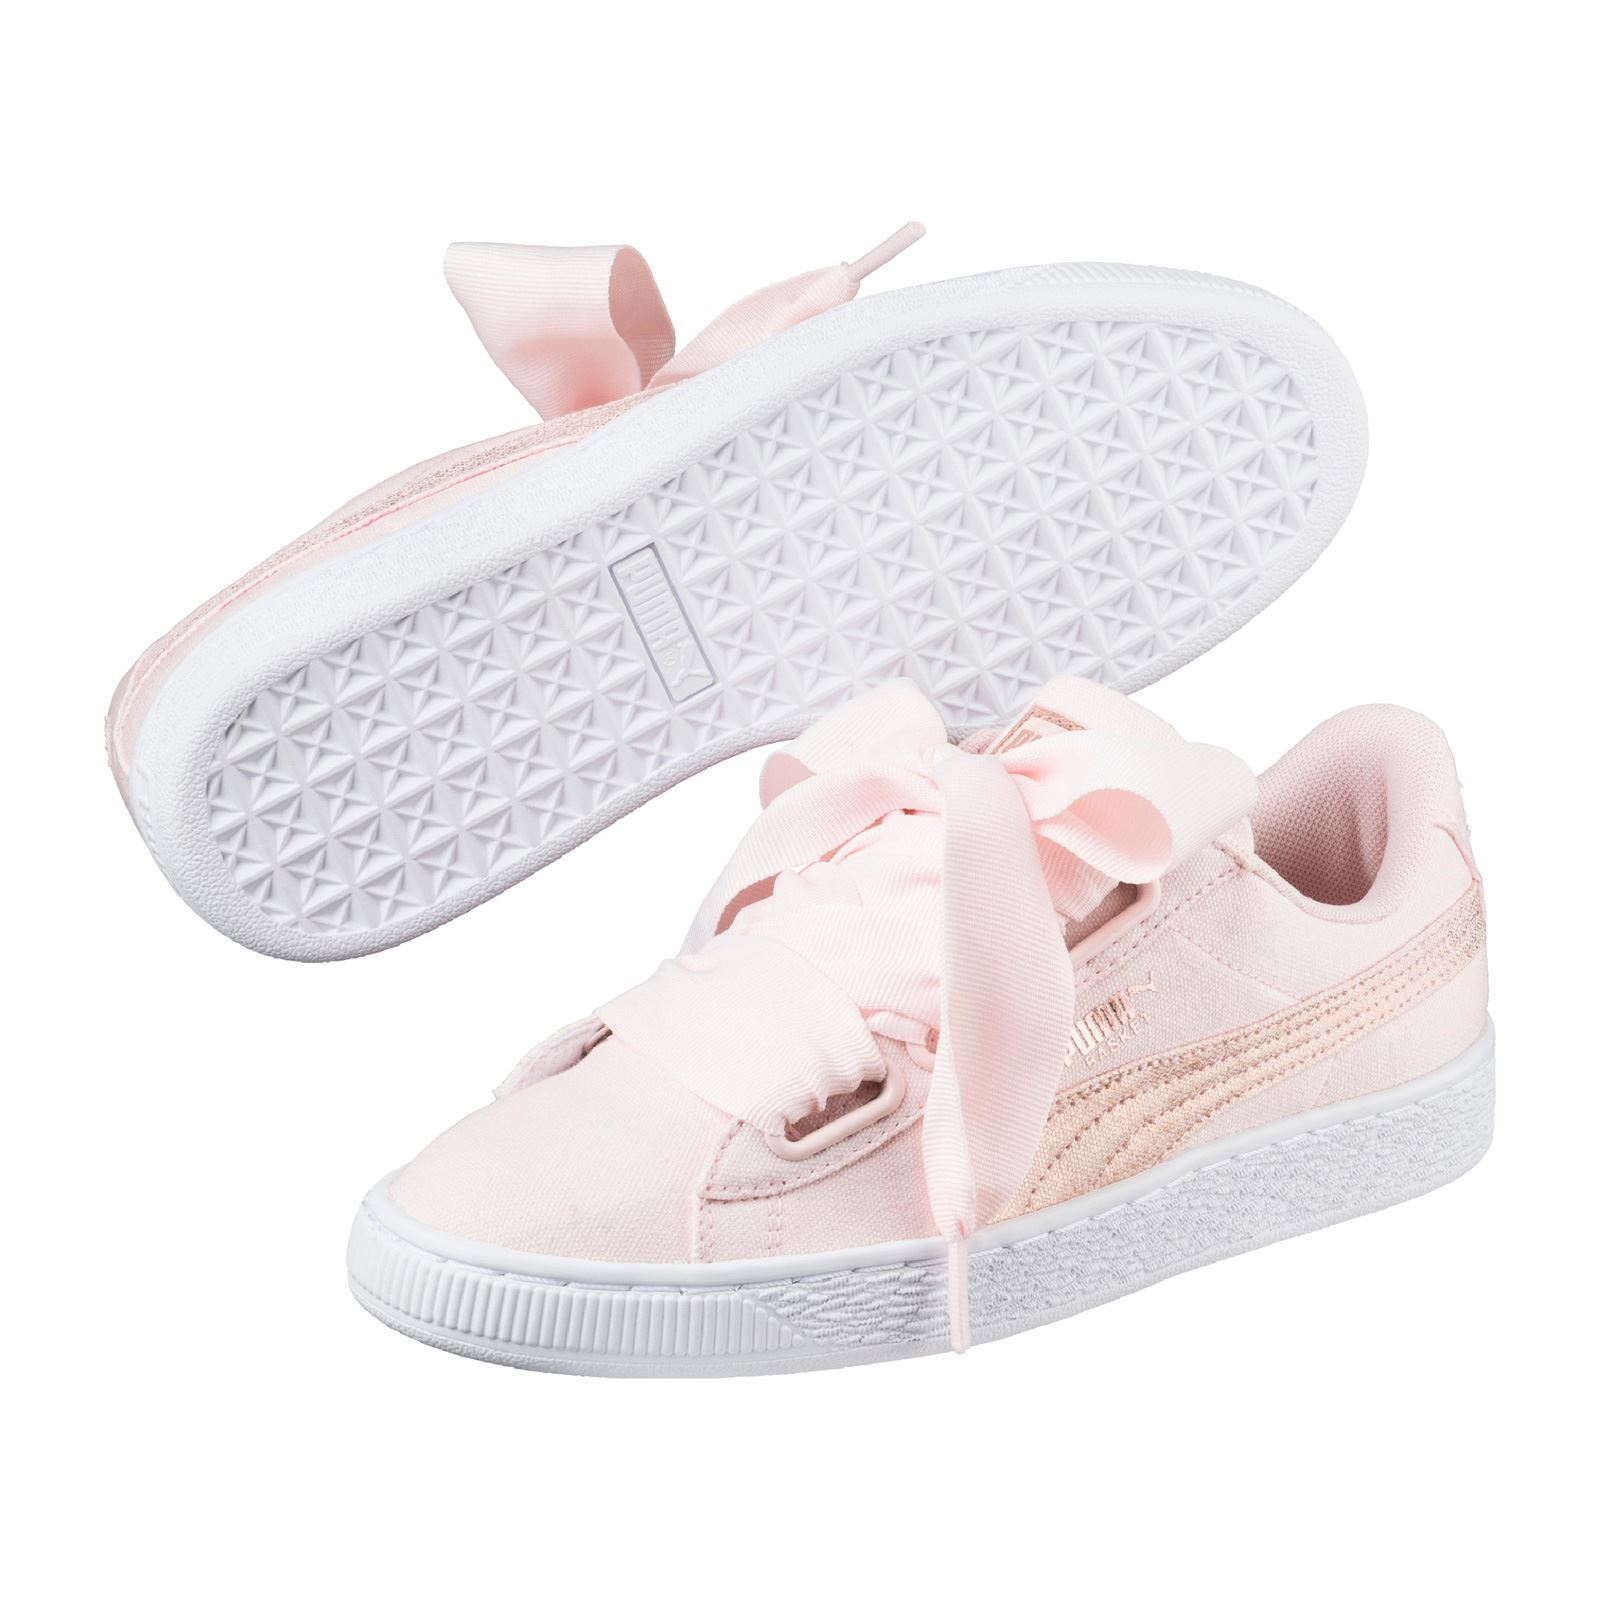 7e1c6cc6f88d Puma Heart Canvas - Baskets Mode - rose   BrandAlley